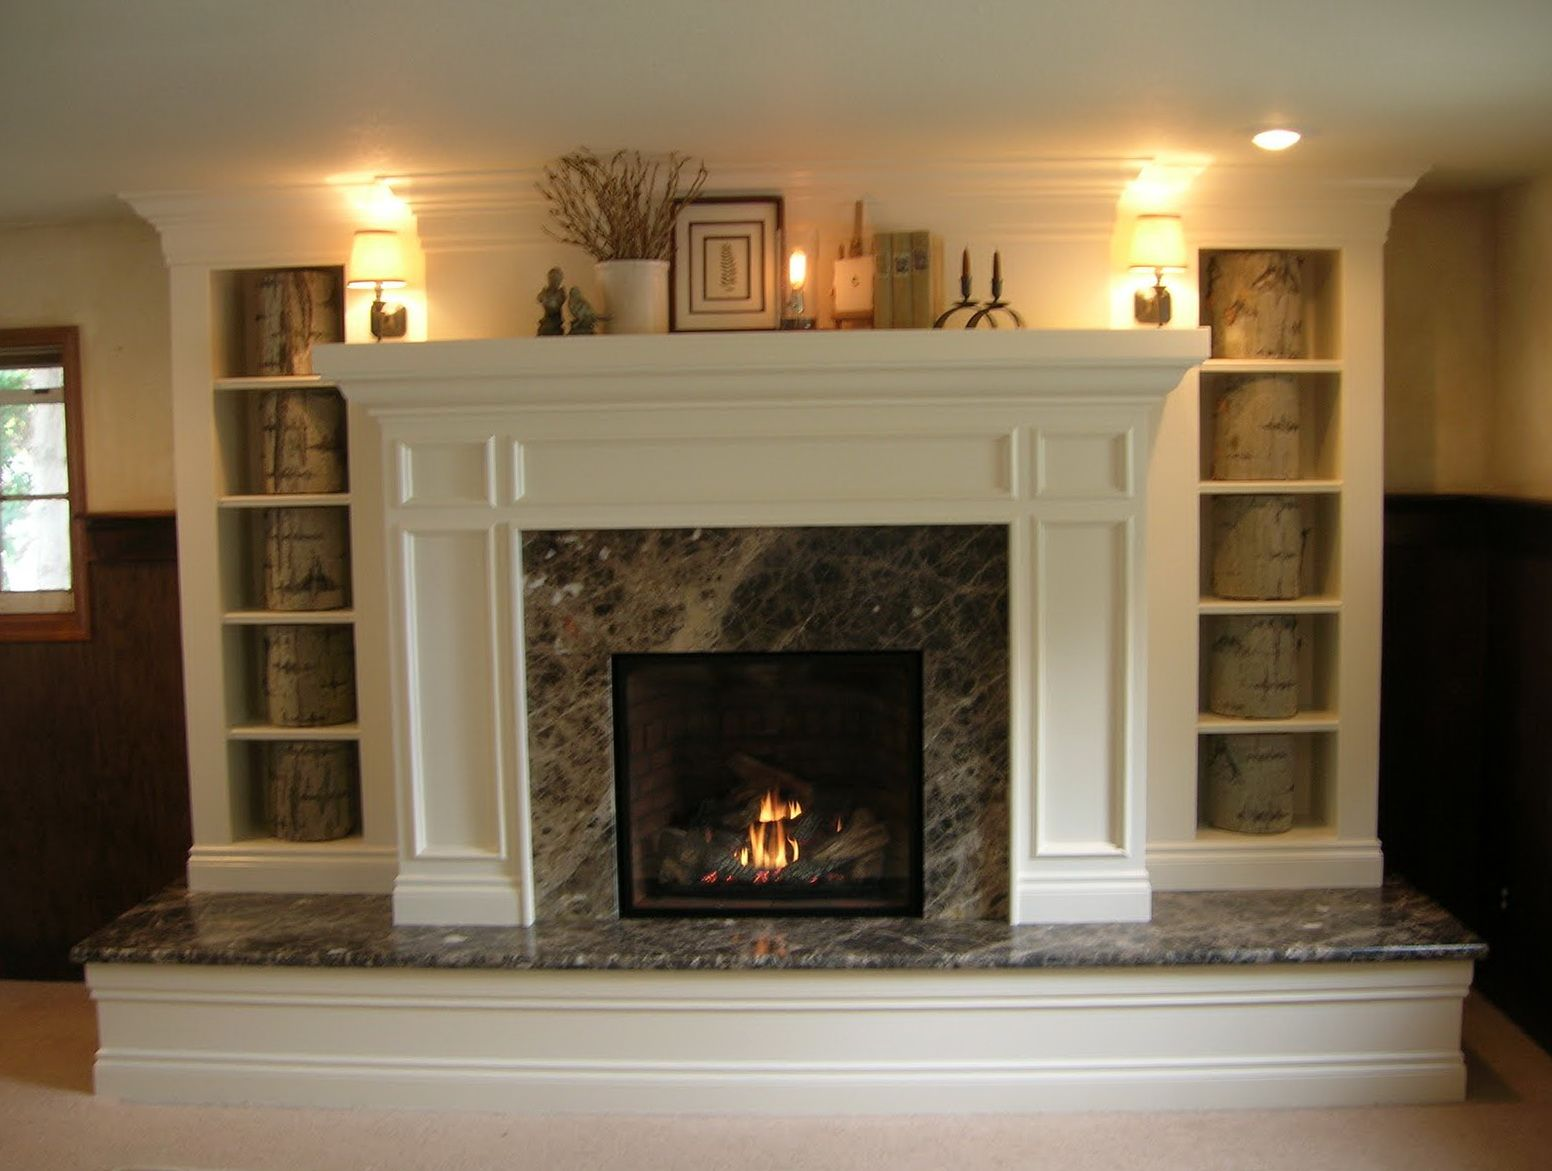 Fireplace Raised Hearth. fireplace design with raised hearth  images do you suppose